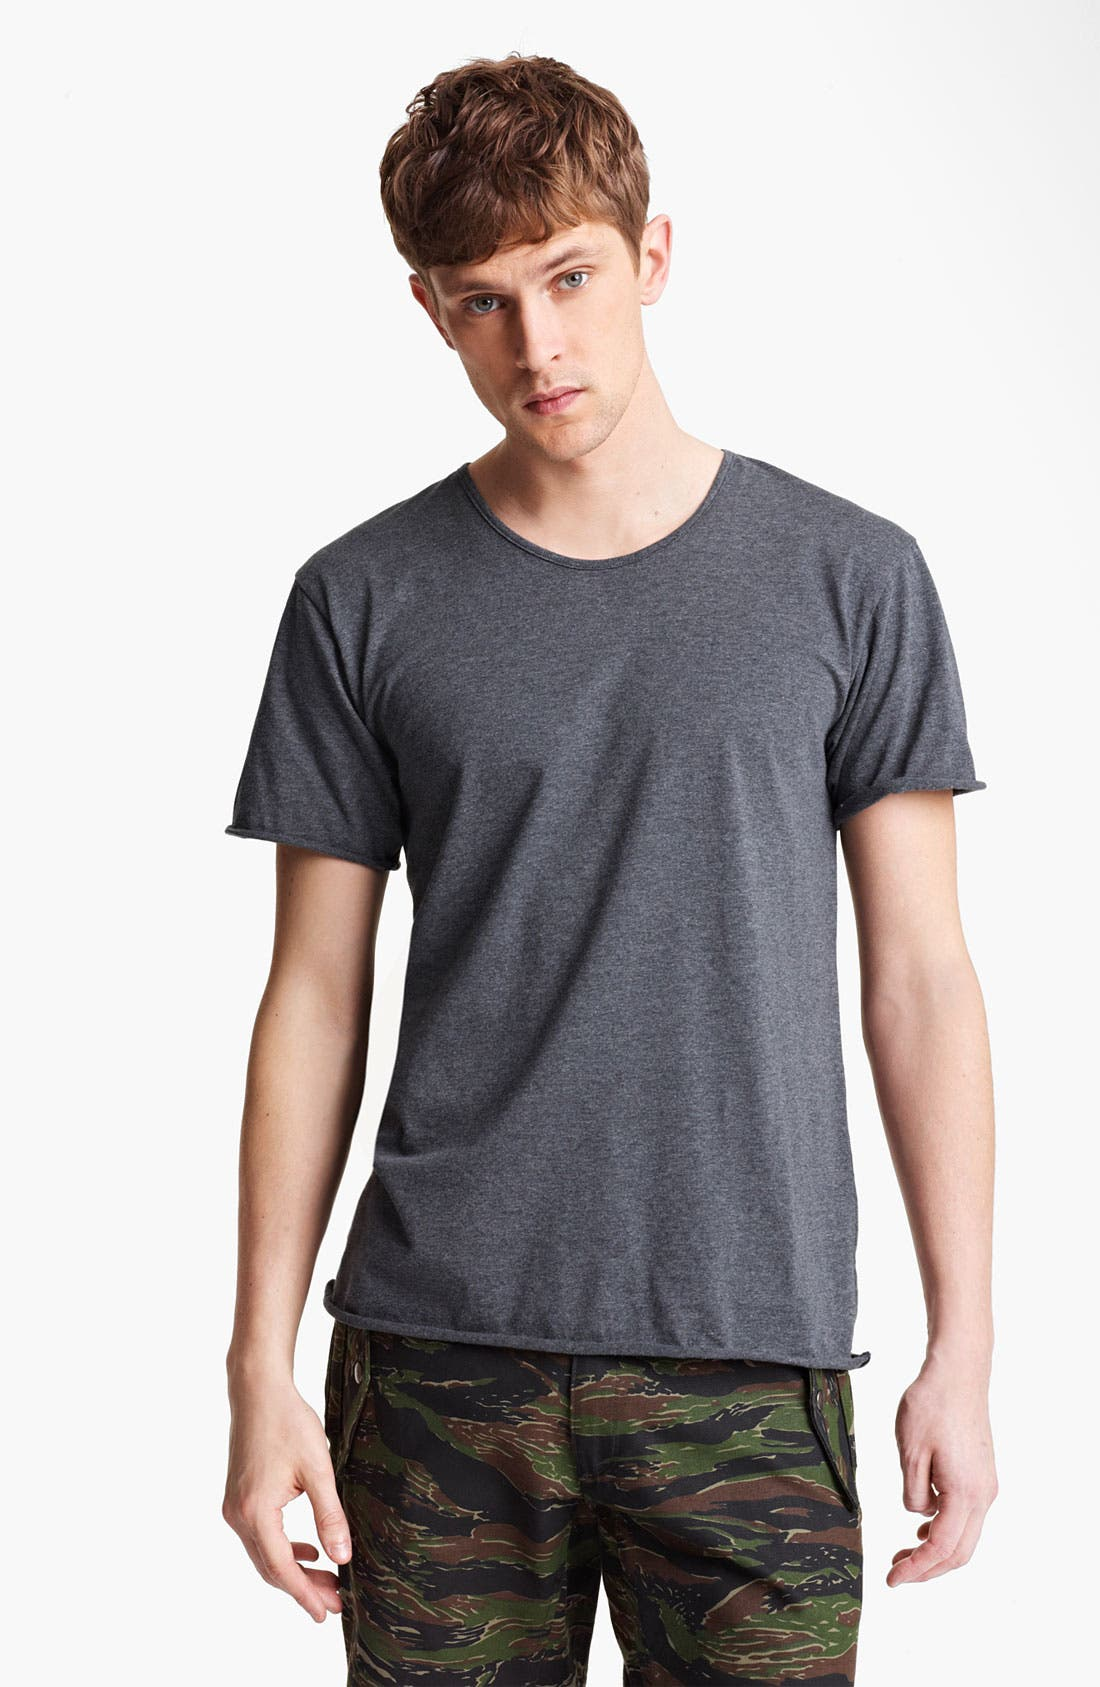 Alternate Image 1 Selected - Field Scout Heathered T-Shirt